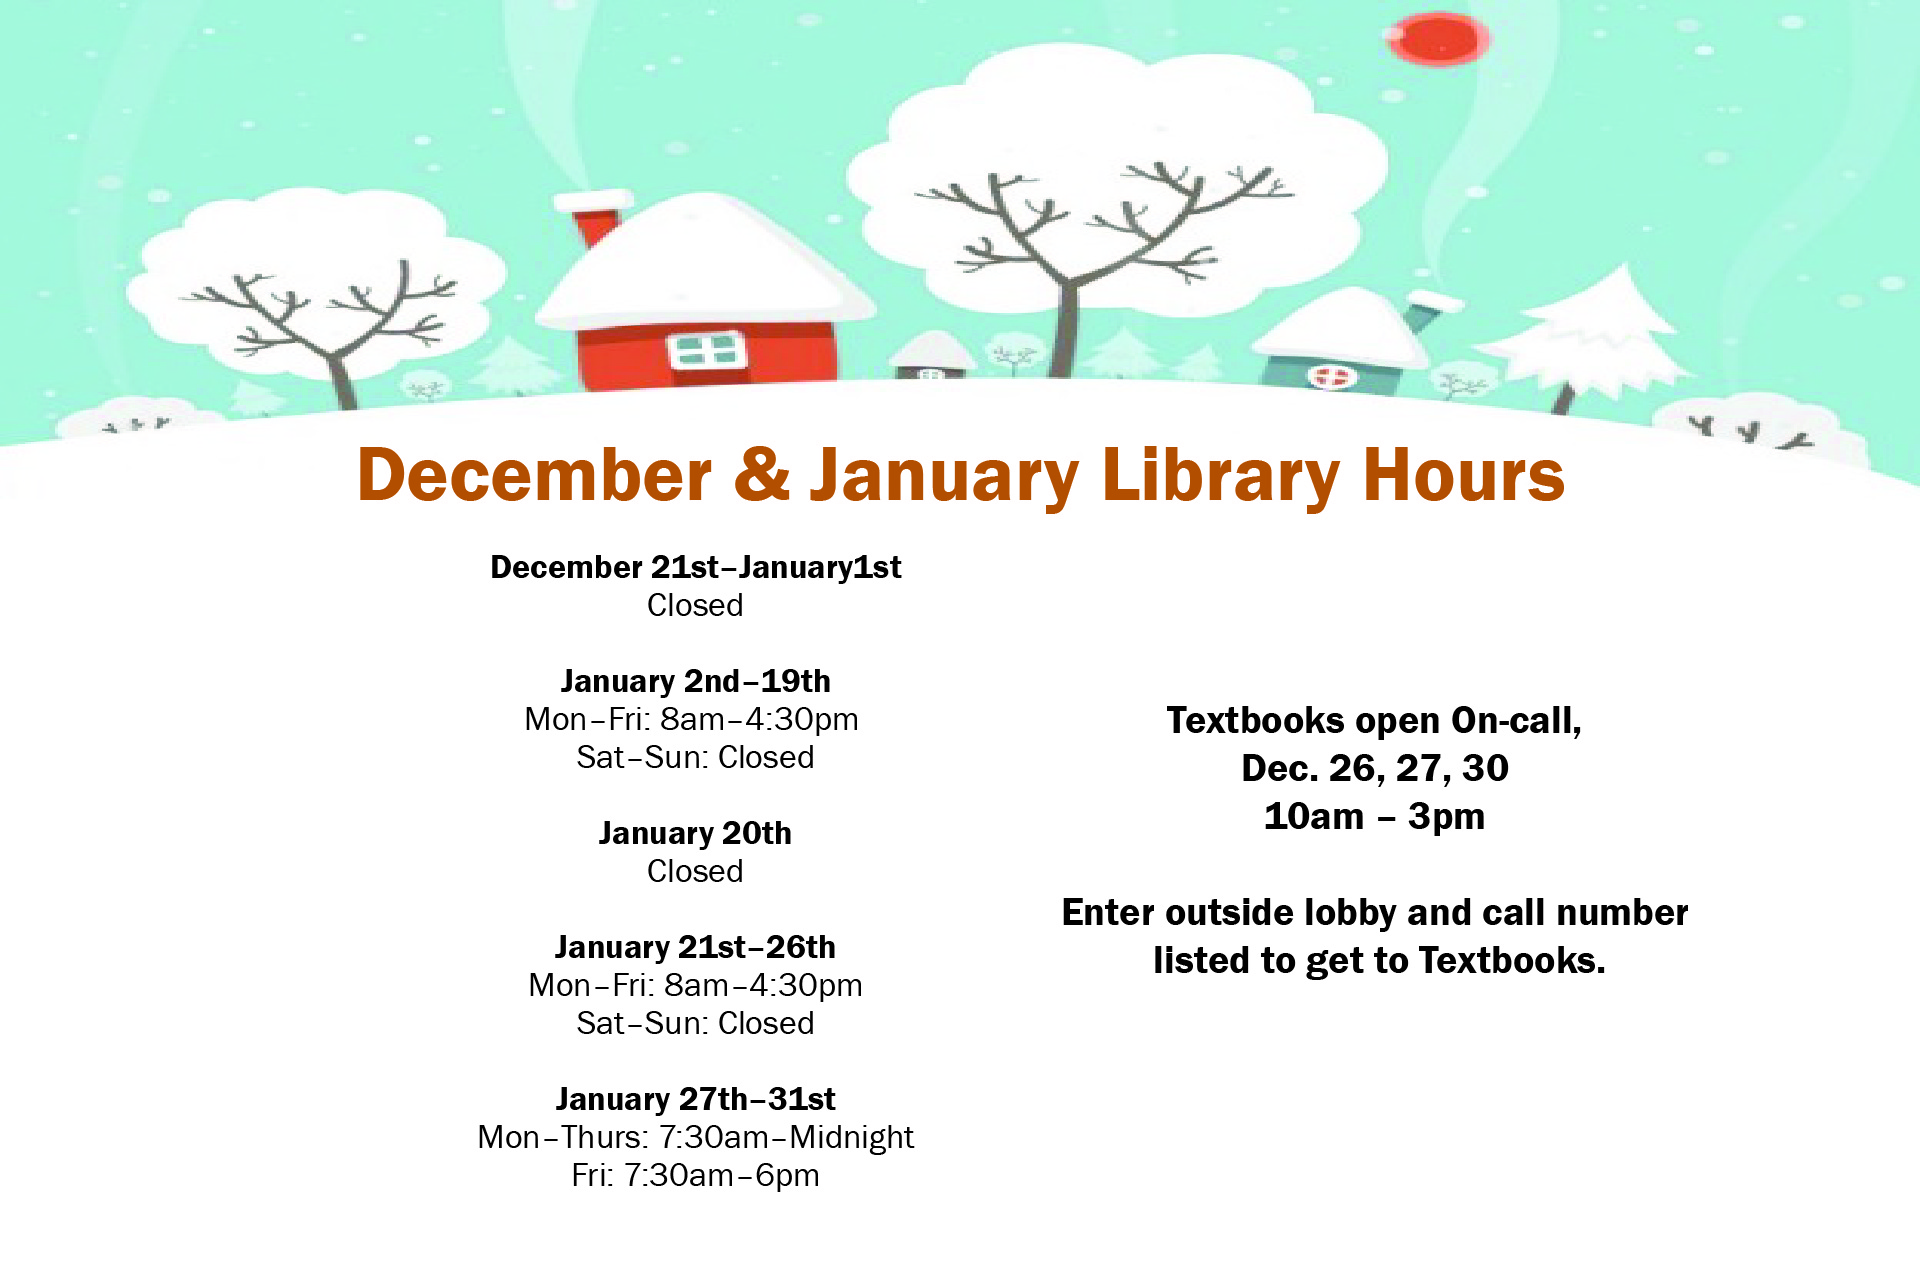 December & January Hours for the Library